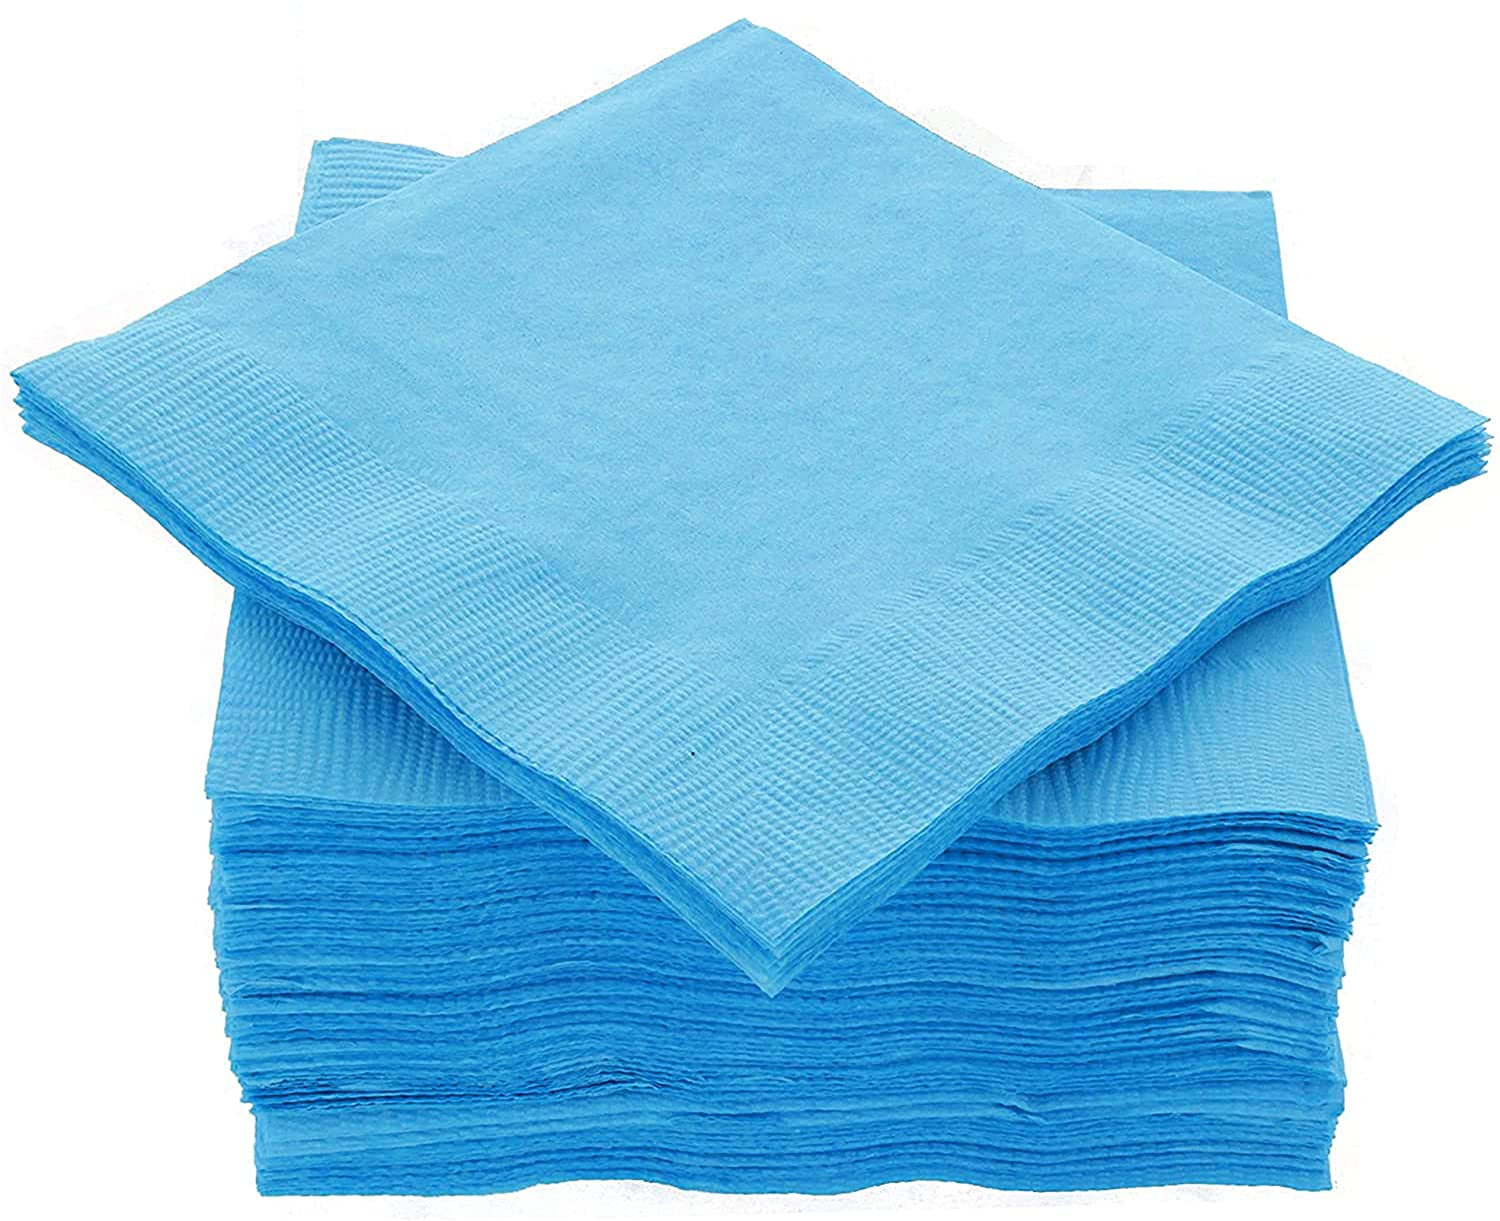 "Amcrate Big Party Pack 125 Count Caribbean Blue Beverage Napkins - Ideal for Wedding, Party, Birthday, Dinner, Lunch, Cocktails. (5"" x 5"")"